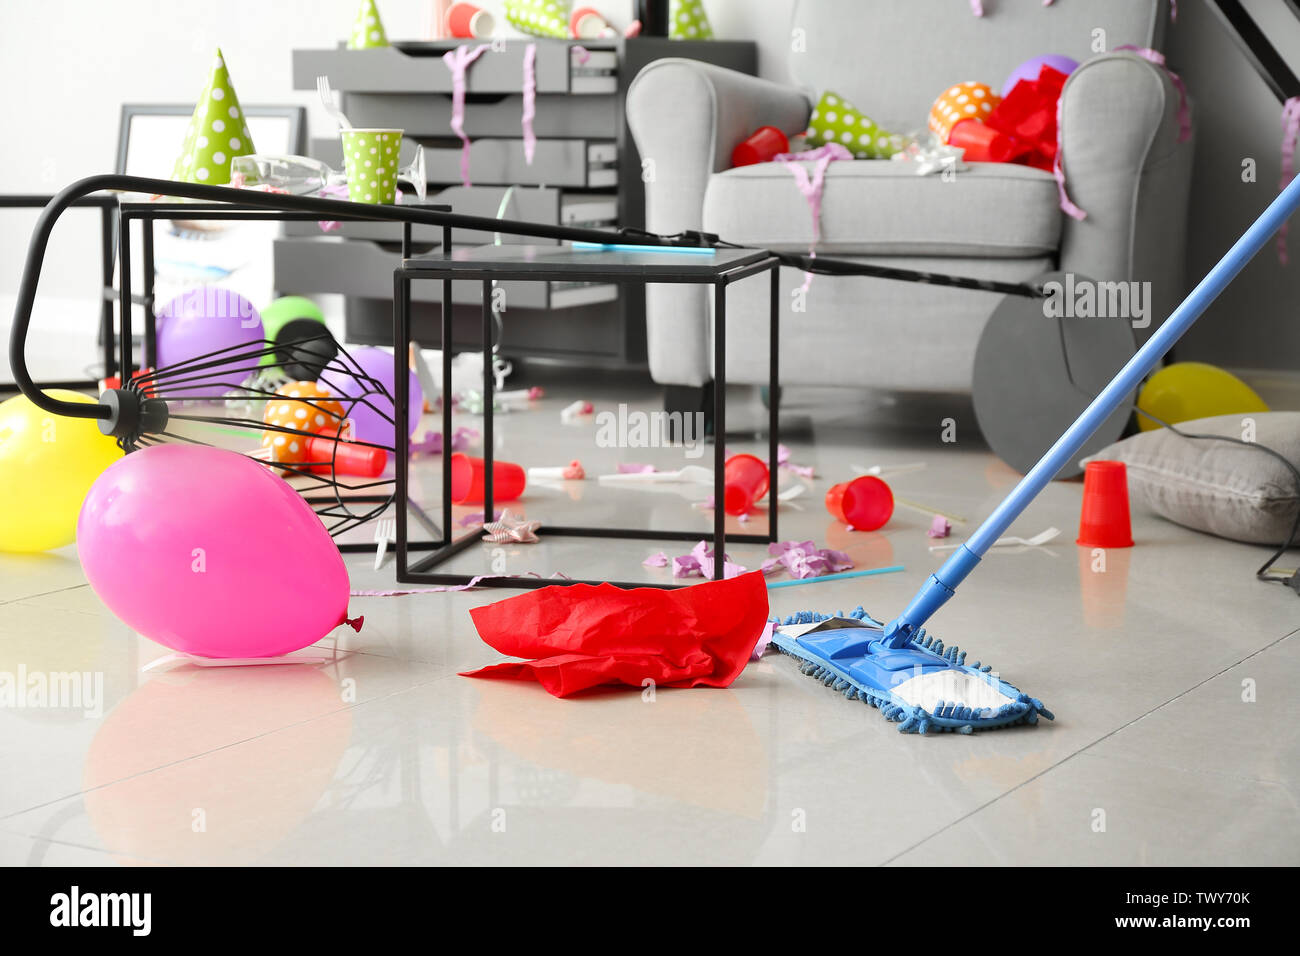 Cleaning of floor in room after party - Stock Image